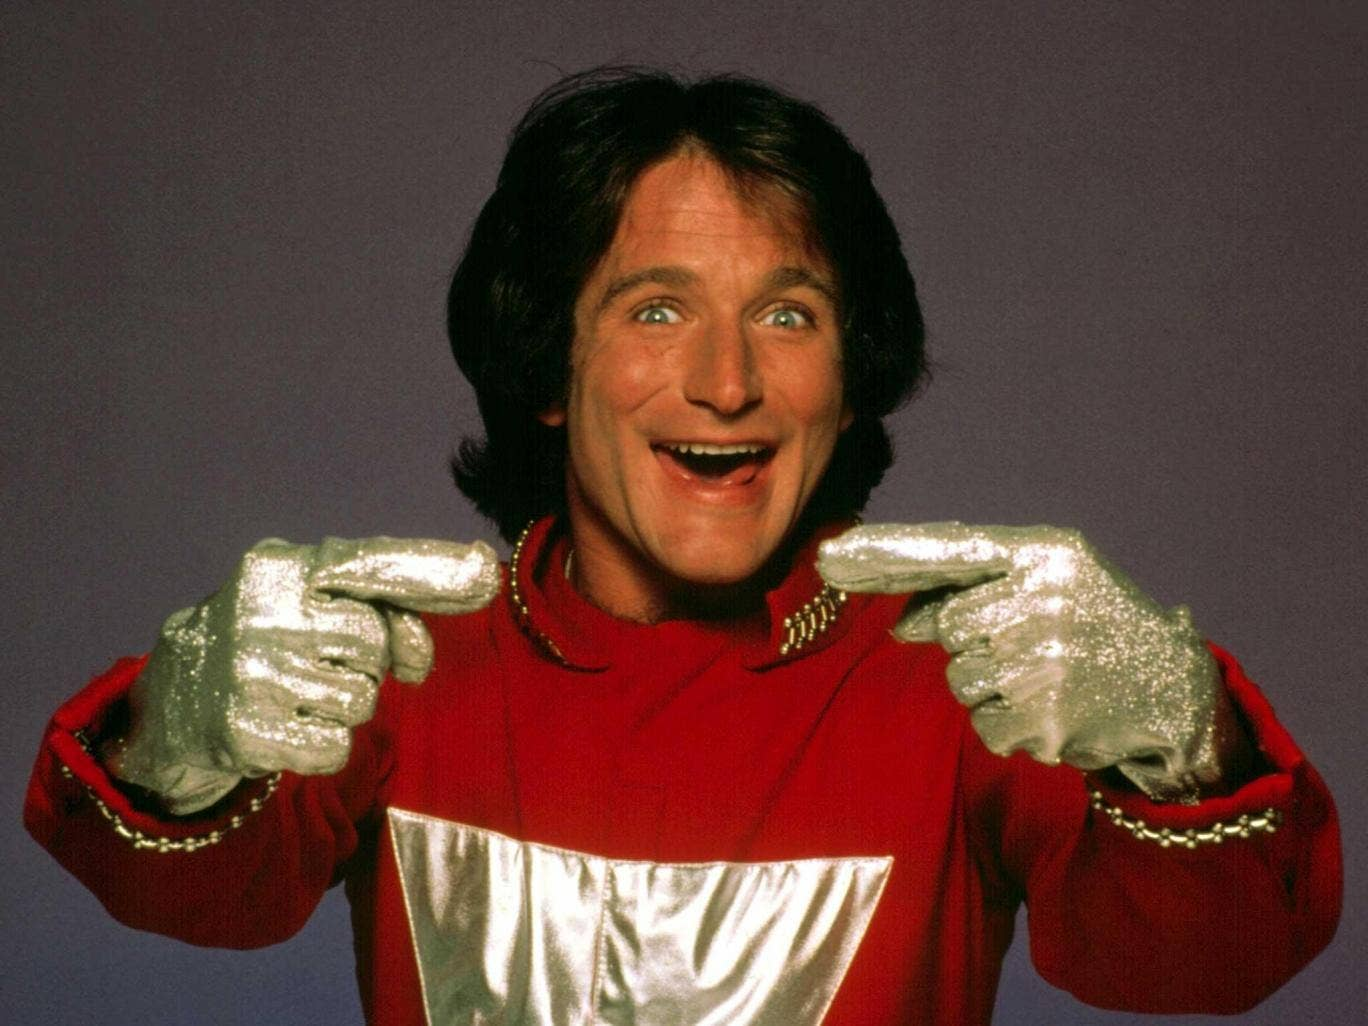 Robin Williams in the world-famous Mork and Mindy series that launched his career